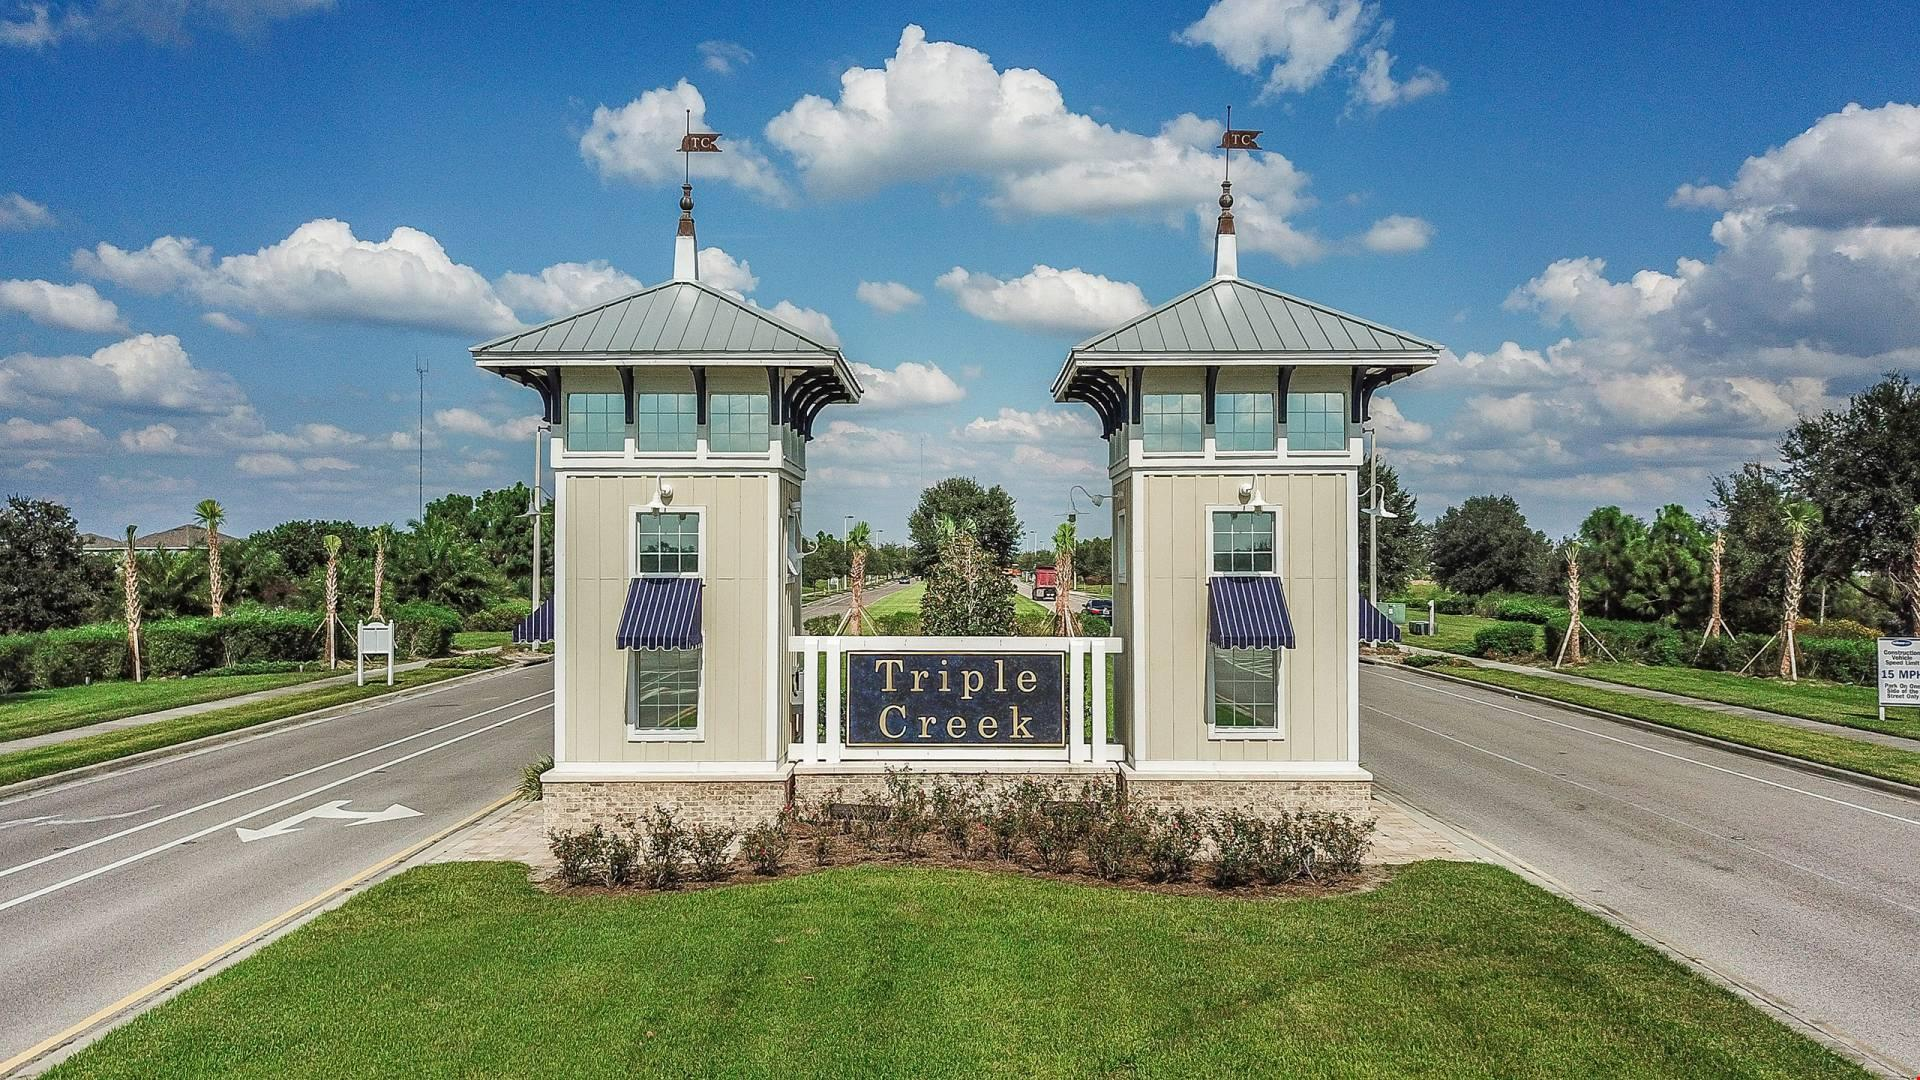 Free Service for Home Buyers | Video Of Triple Creek By Lennar Homes Riverview Florida Real Estate | Ruskin Florida Realtor | New Homes for Sale | Tampa Florida